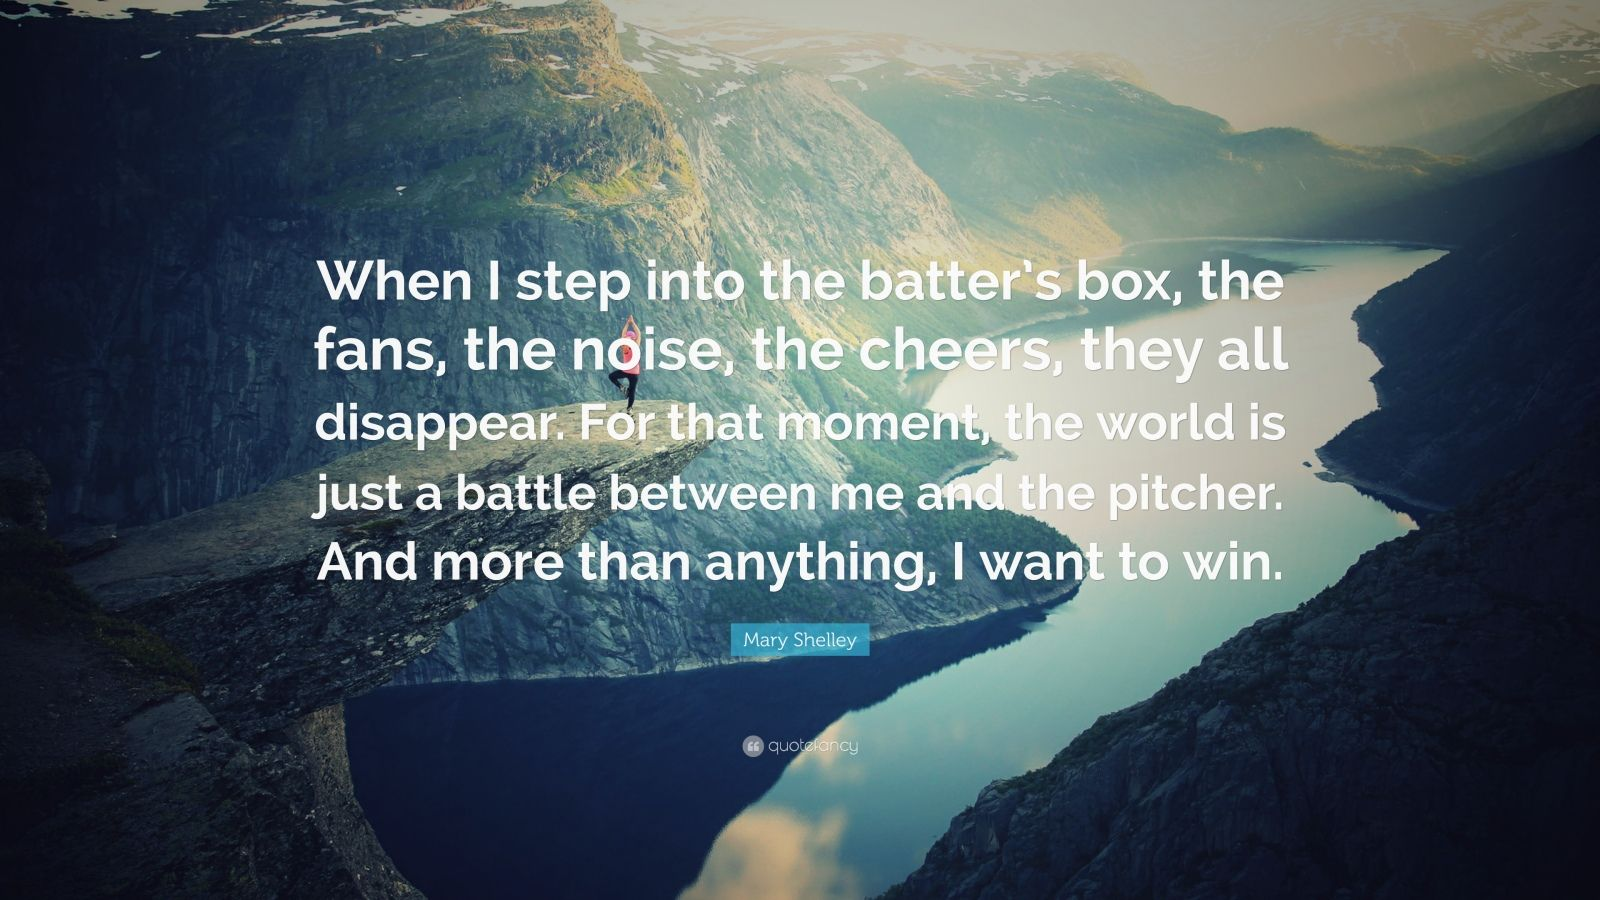 """Mary Shelley Quote: """"When I step into the batter's box, the fans, the noise, the cheers, they all disappear. For that moment, the world is just a battle between me and the pitcher. And more than anything, I want to win."""""""